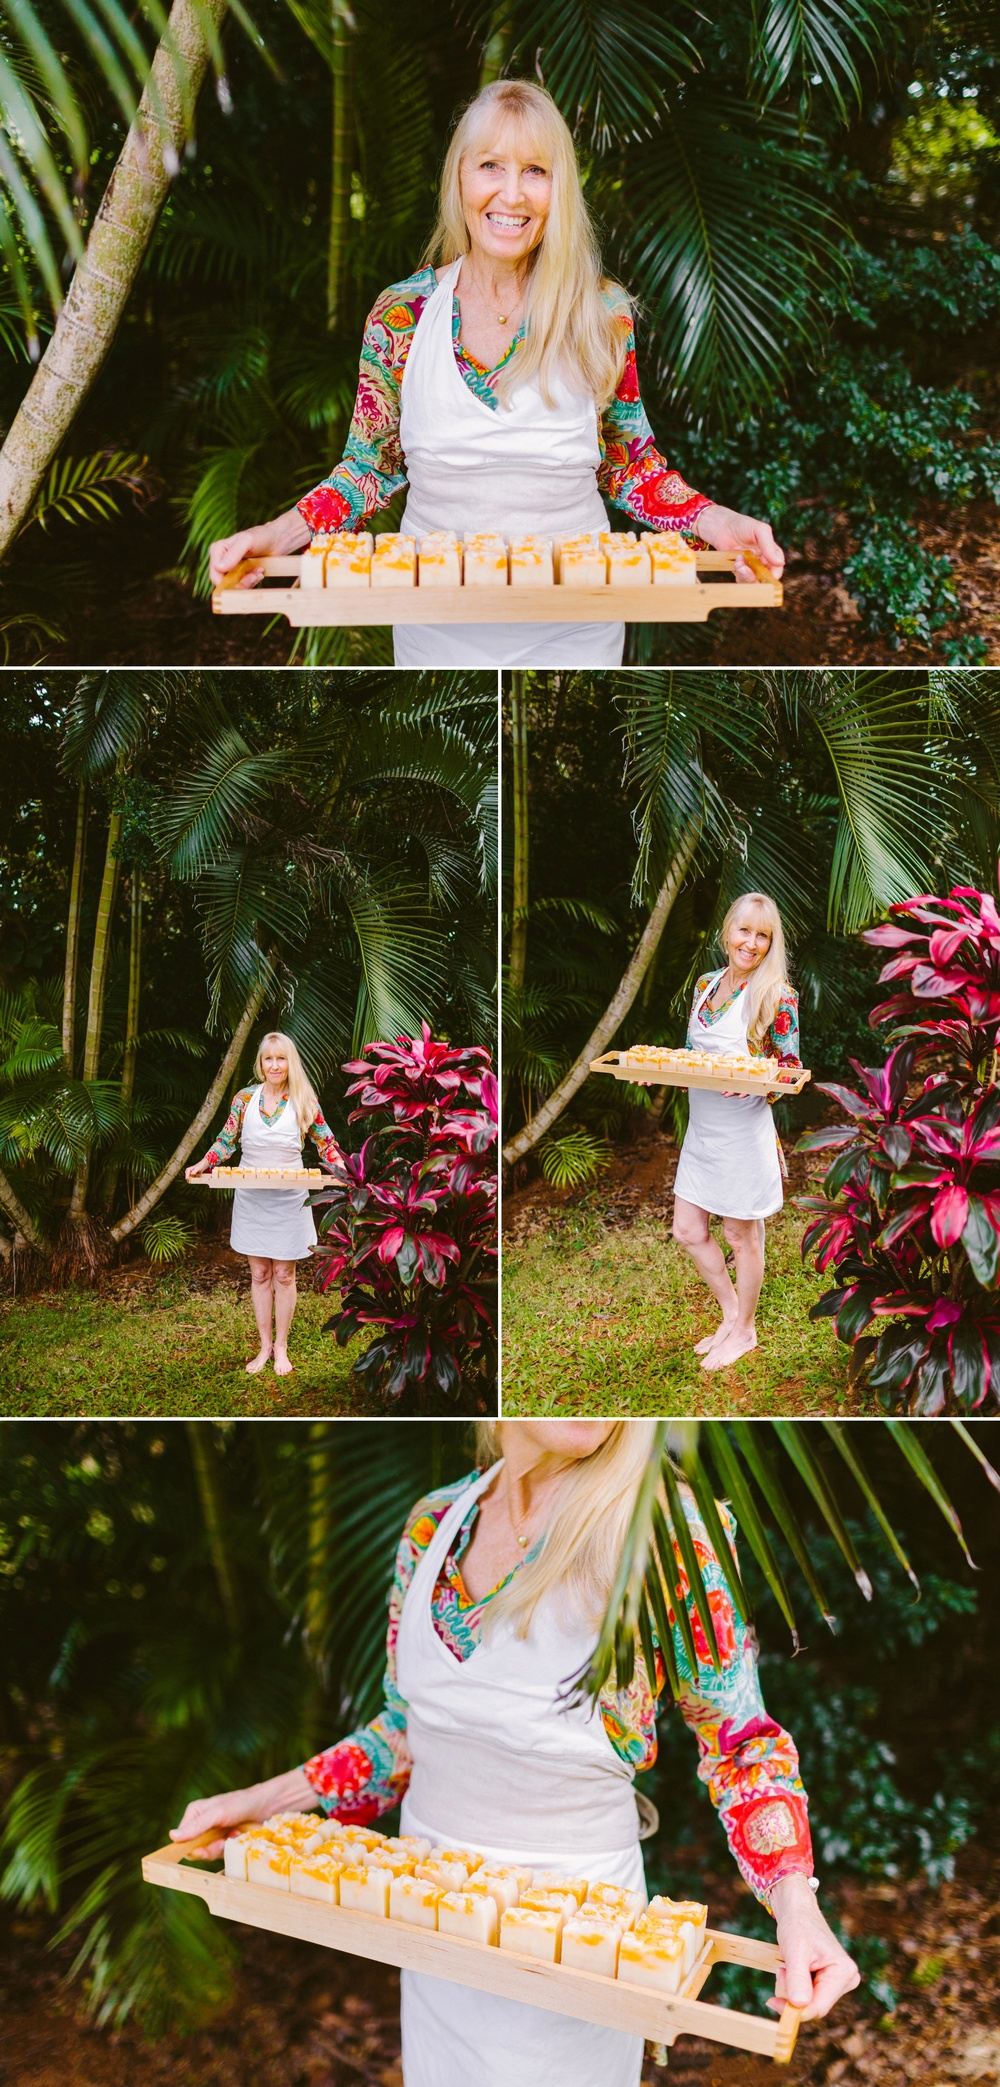 kauai wedding photographer | victoria heer photography | victoria heer | kopa kauai | handmade soap